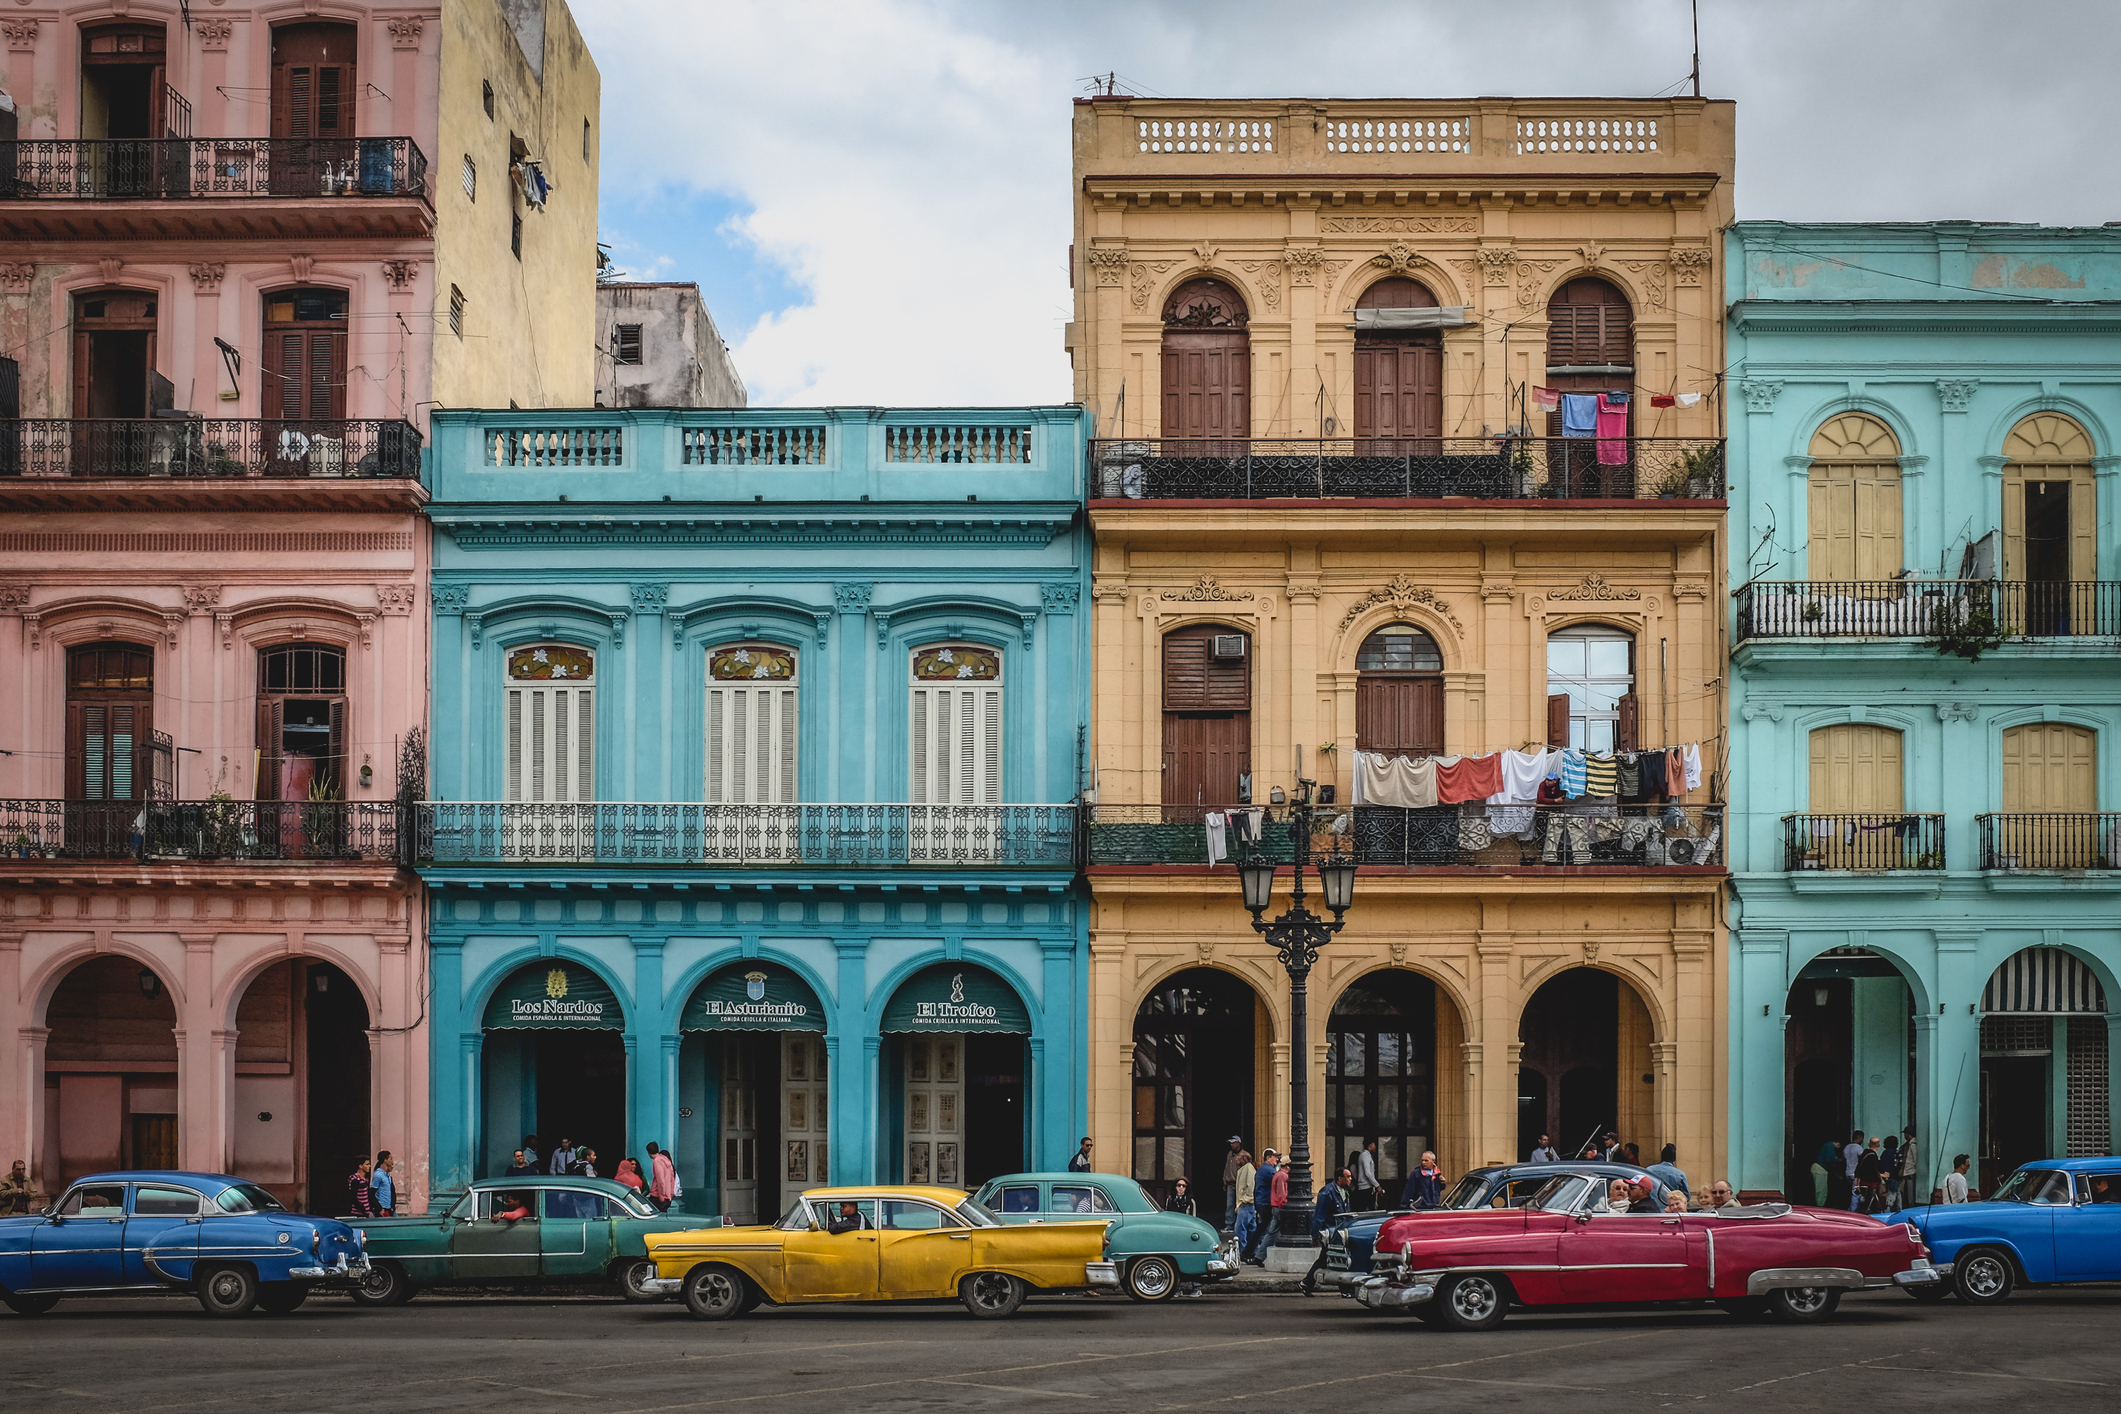 A photo of colonial buildings in old Havana, with many colorful old american cars driving along the road.